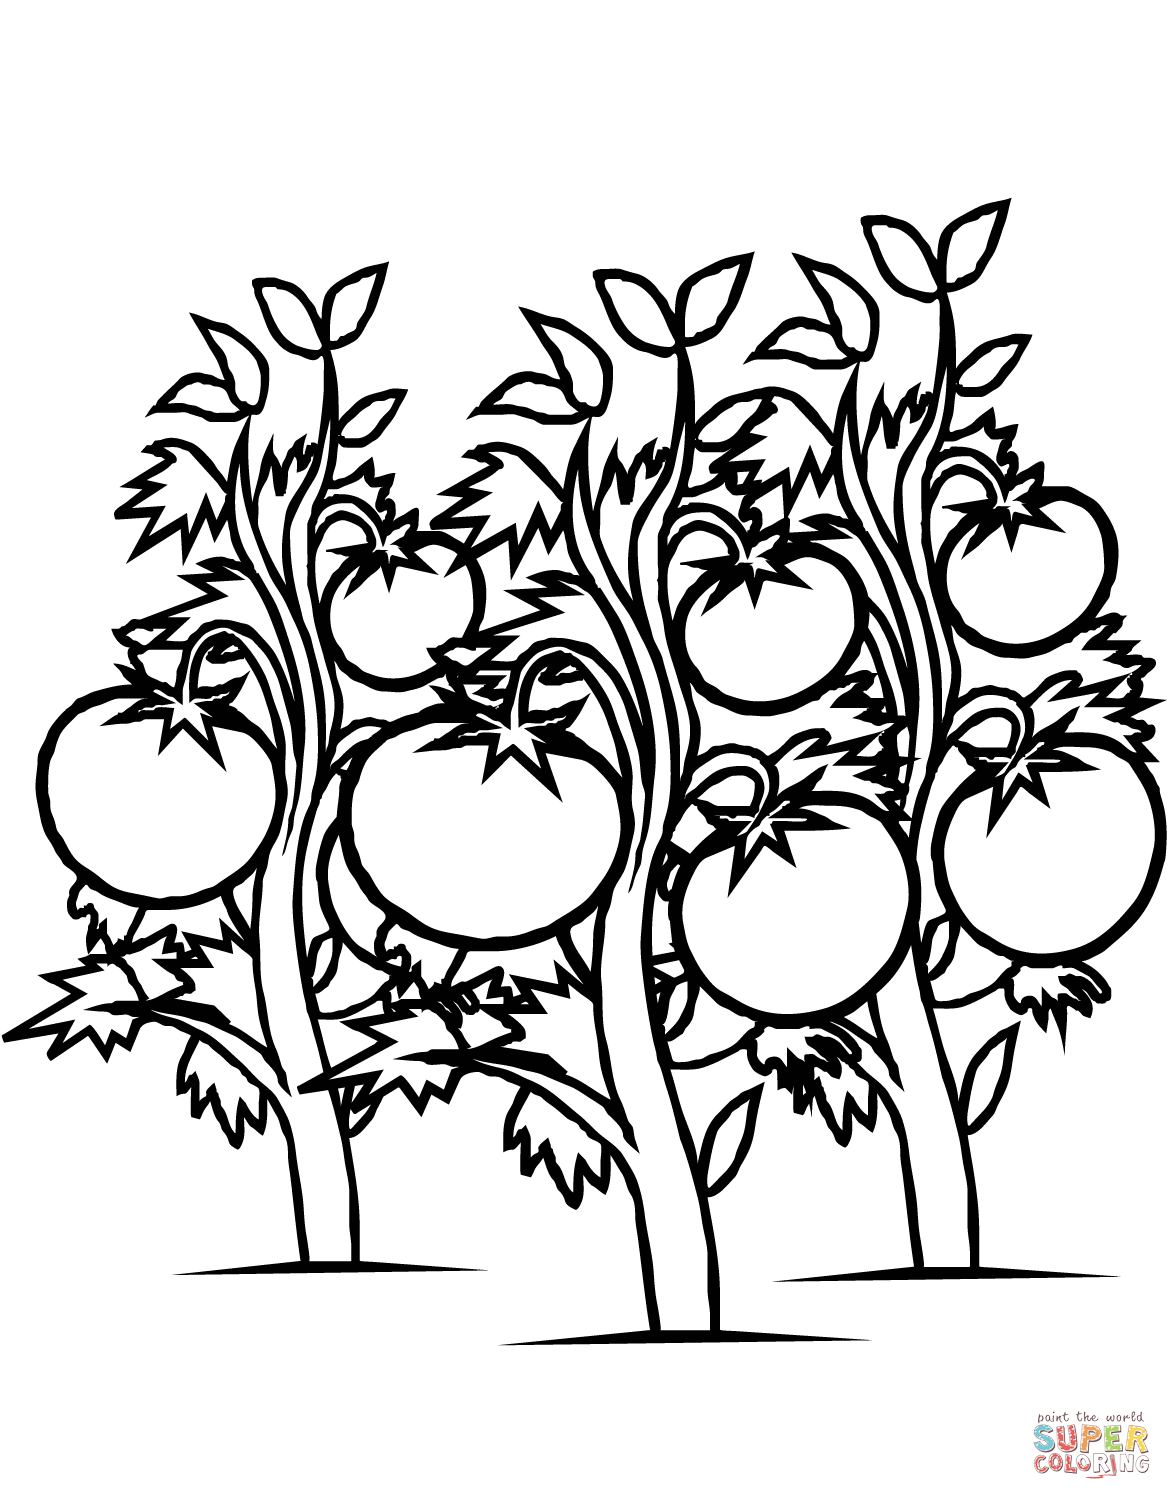 Tomatoes Plants Coloring Page